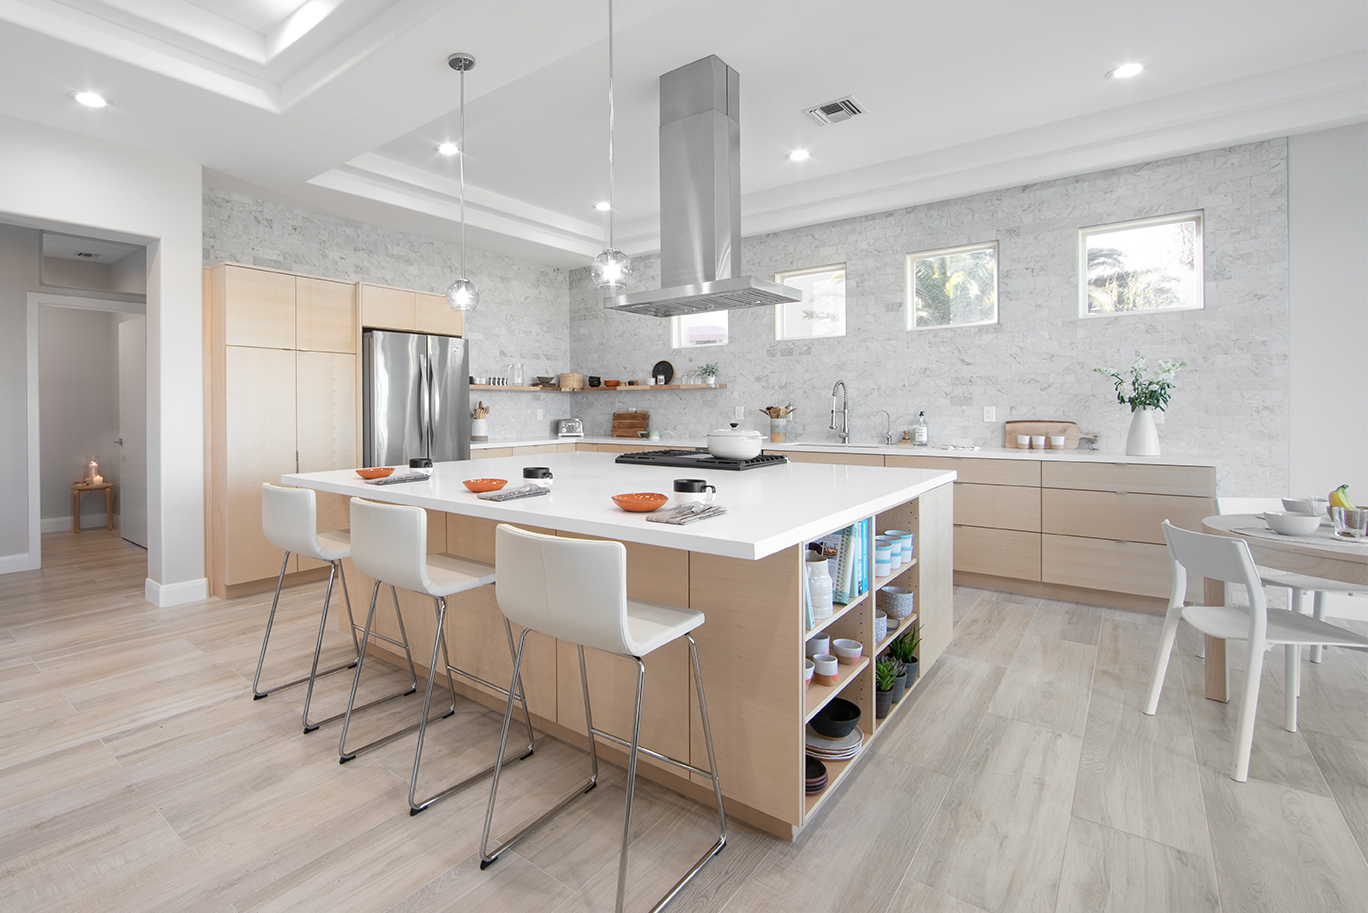 Winners announced in Showplace Cabinetry national kitchen and bath ...